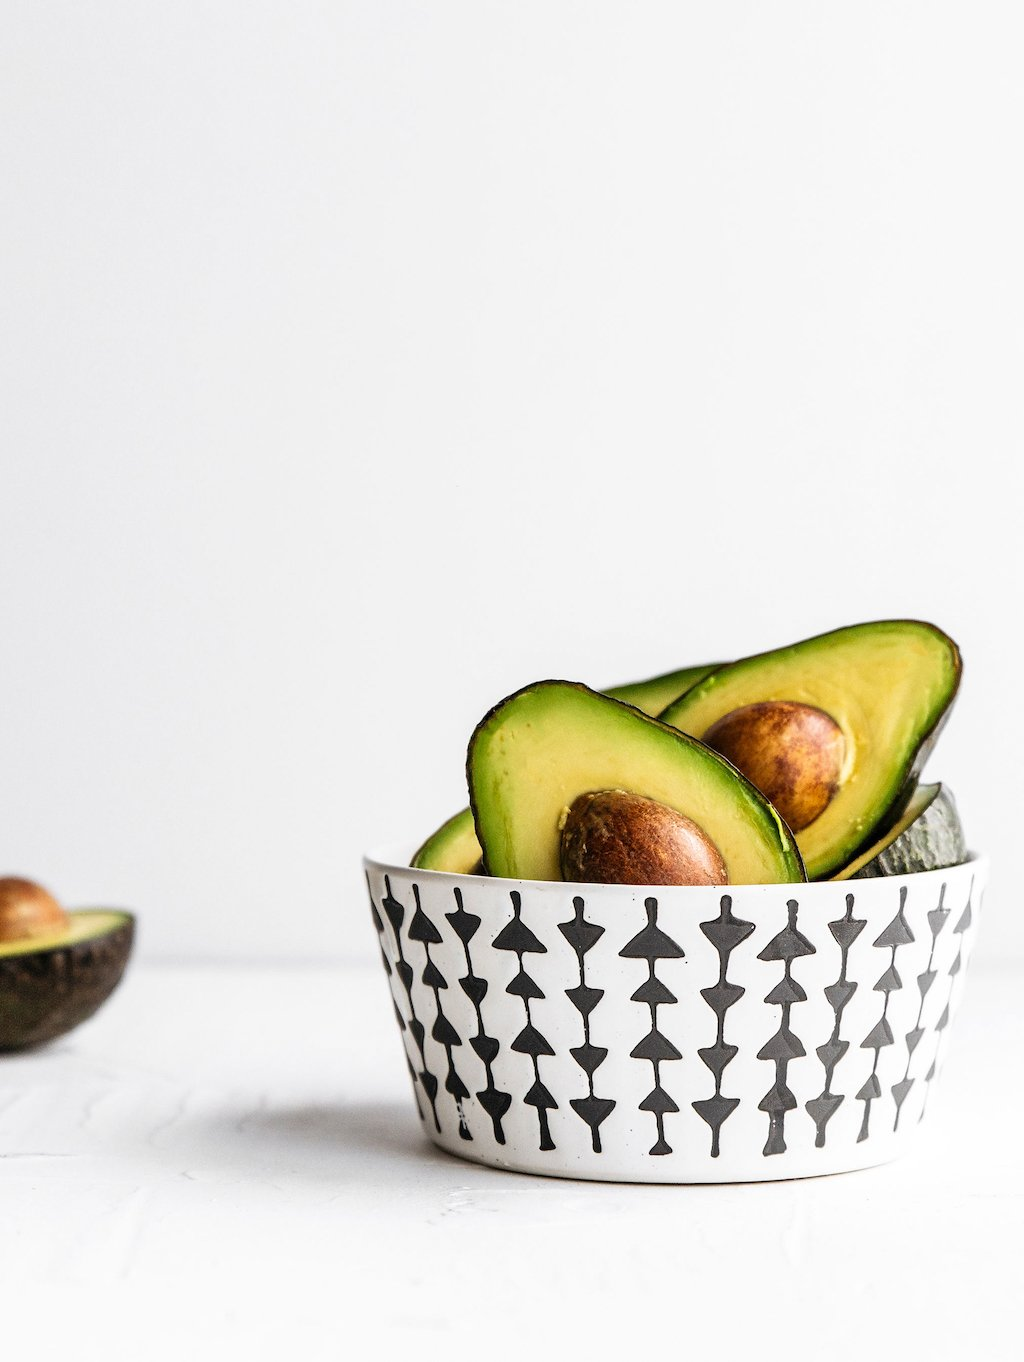 Reduce health anxiety by eating healthy foods like avocados.